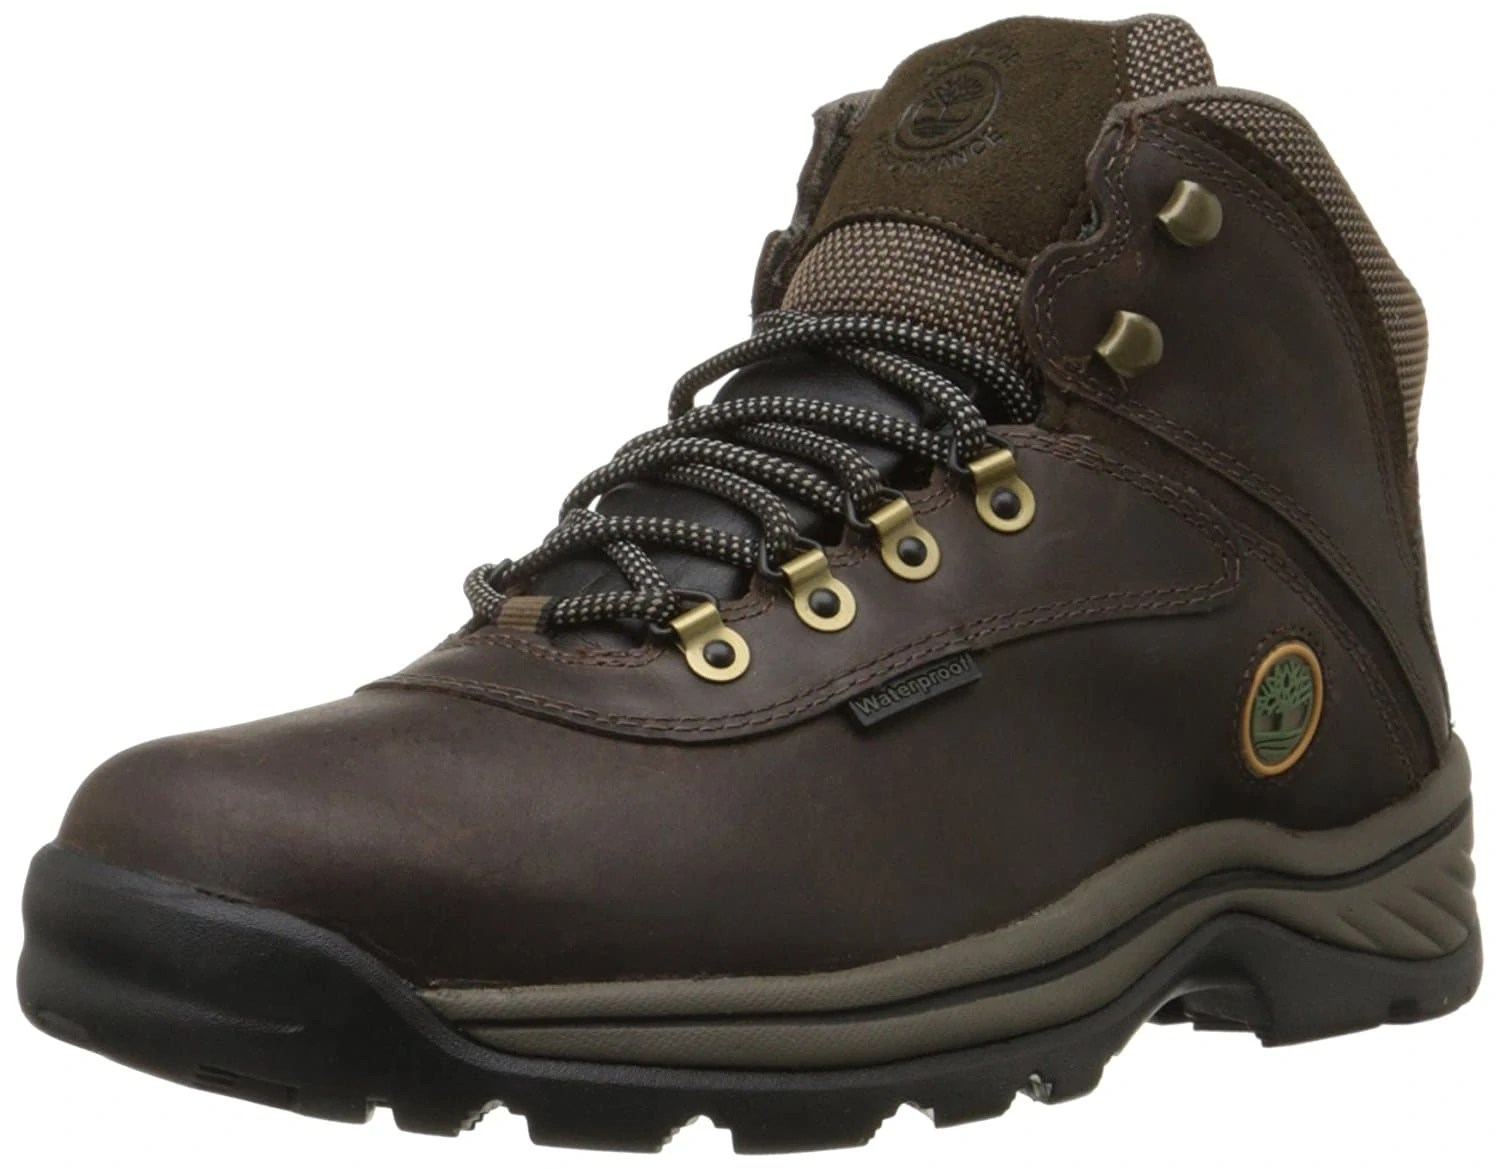 Timberland White Ledge Men's Waterproof Boot Side